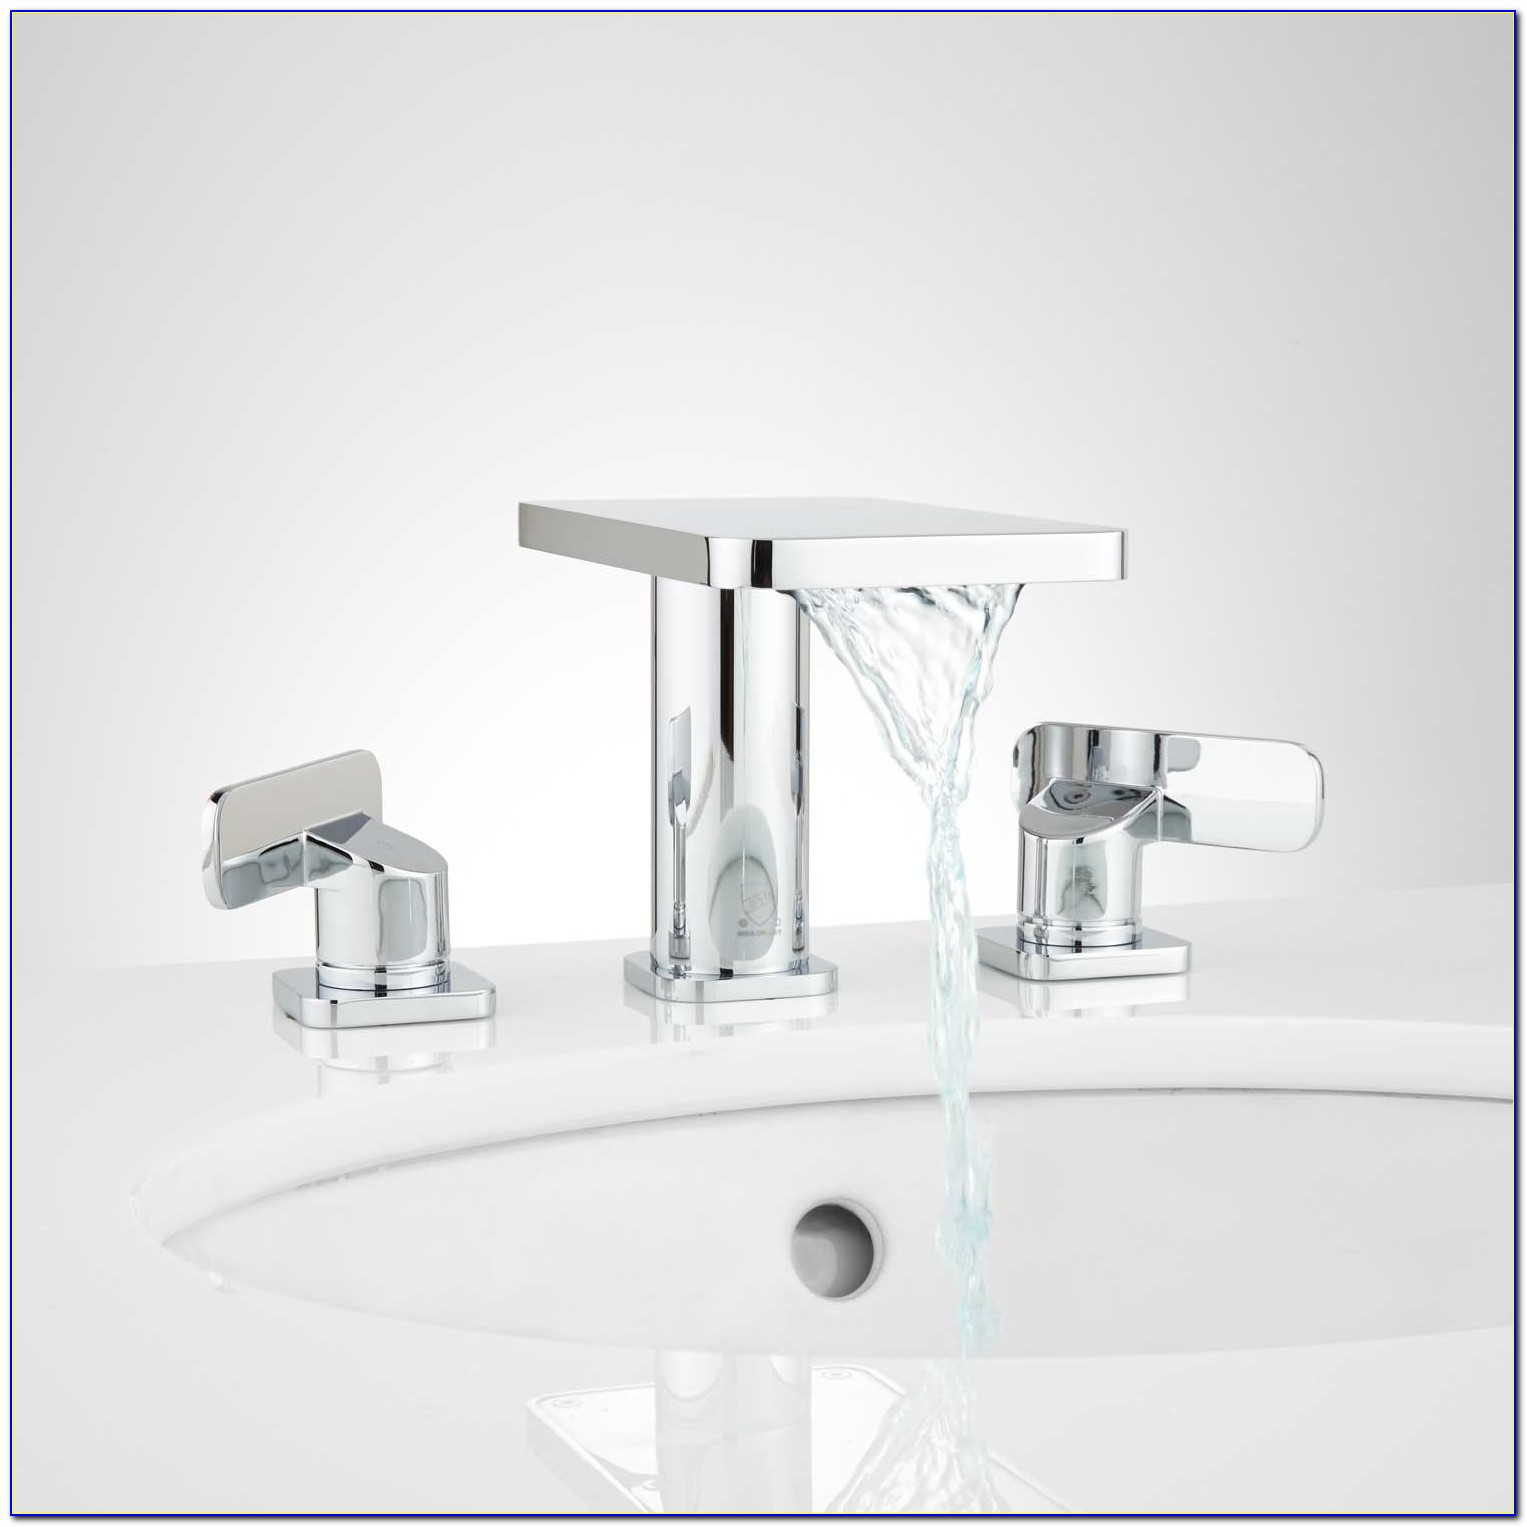 Waterfall Bathroom Sink Faucet Amazon